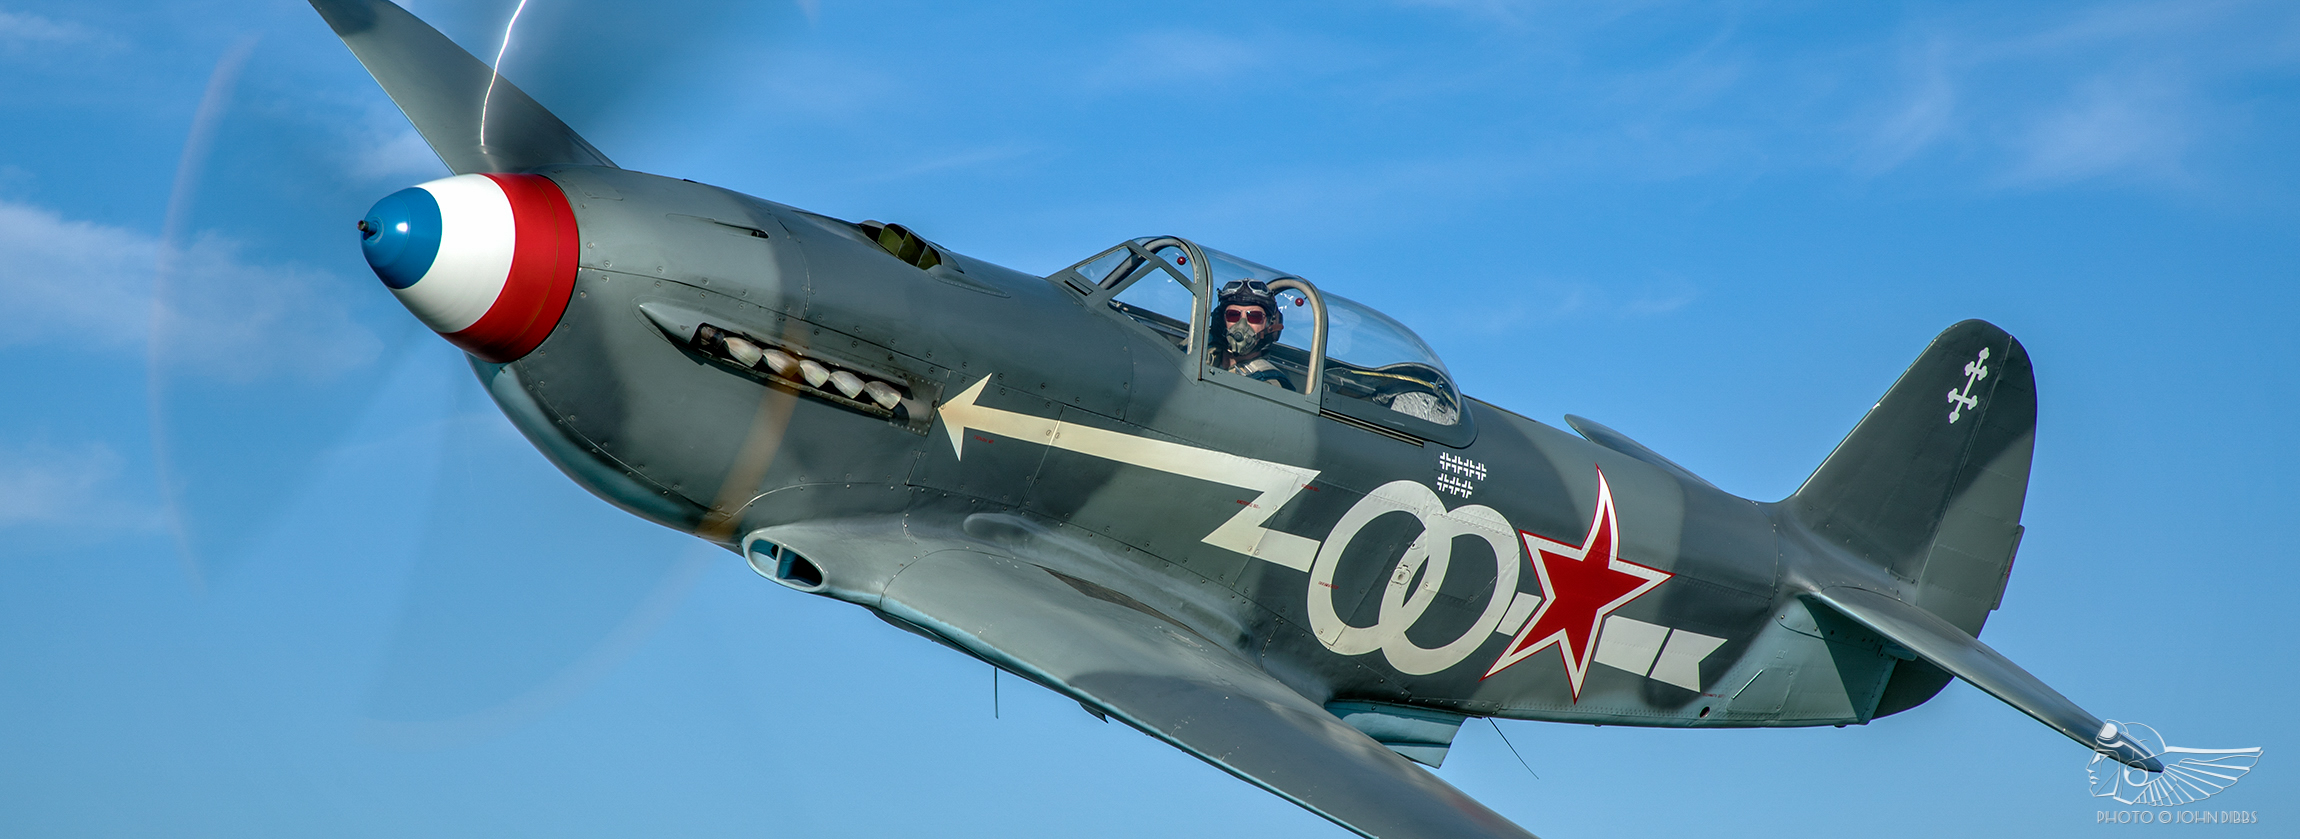 Yak-3: Flying one of the most potent piston fighters